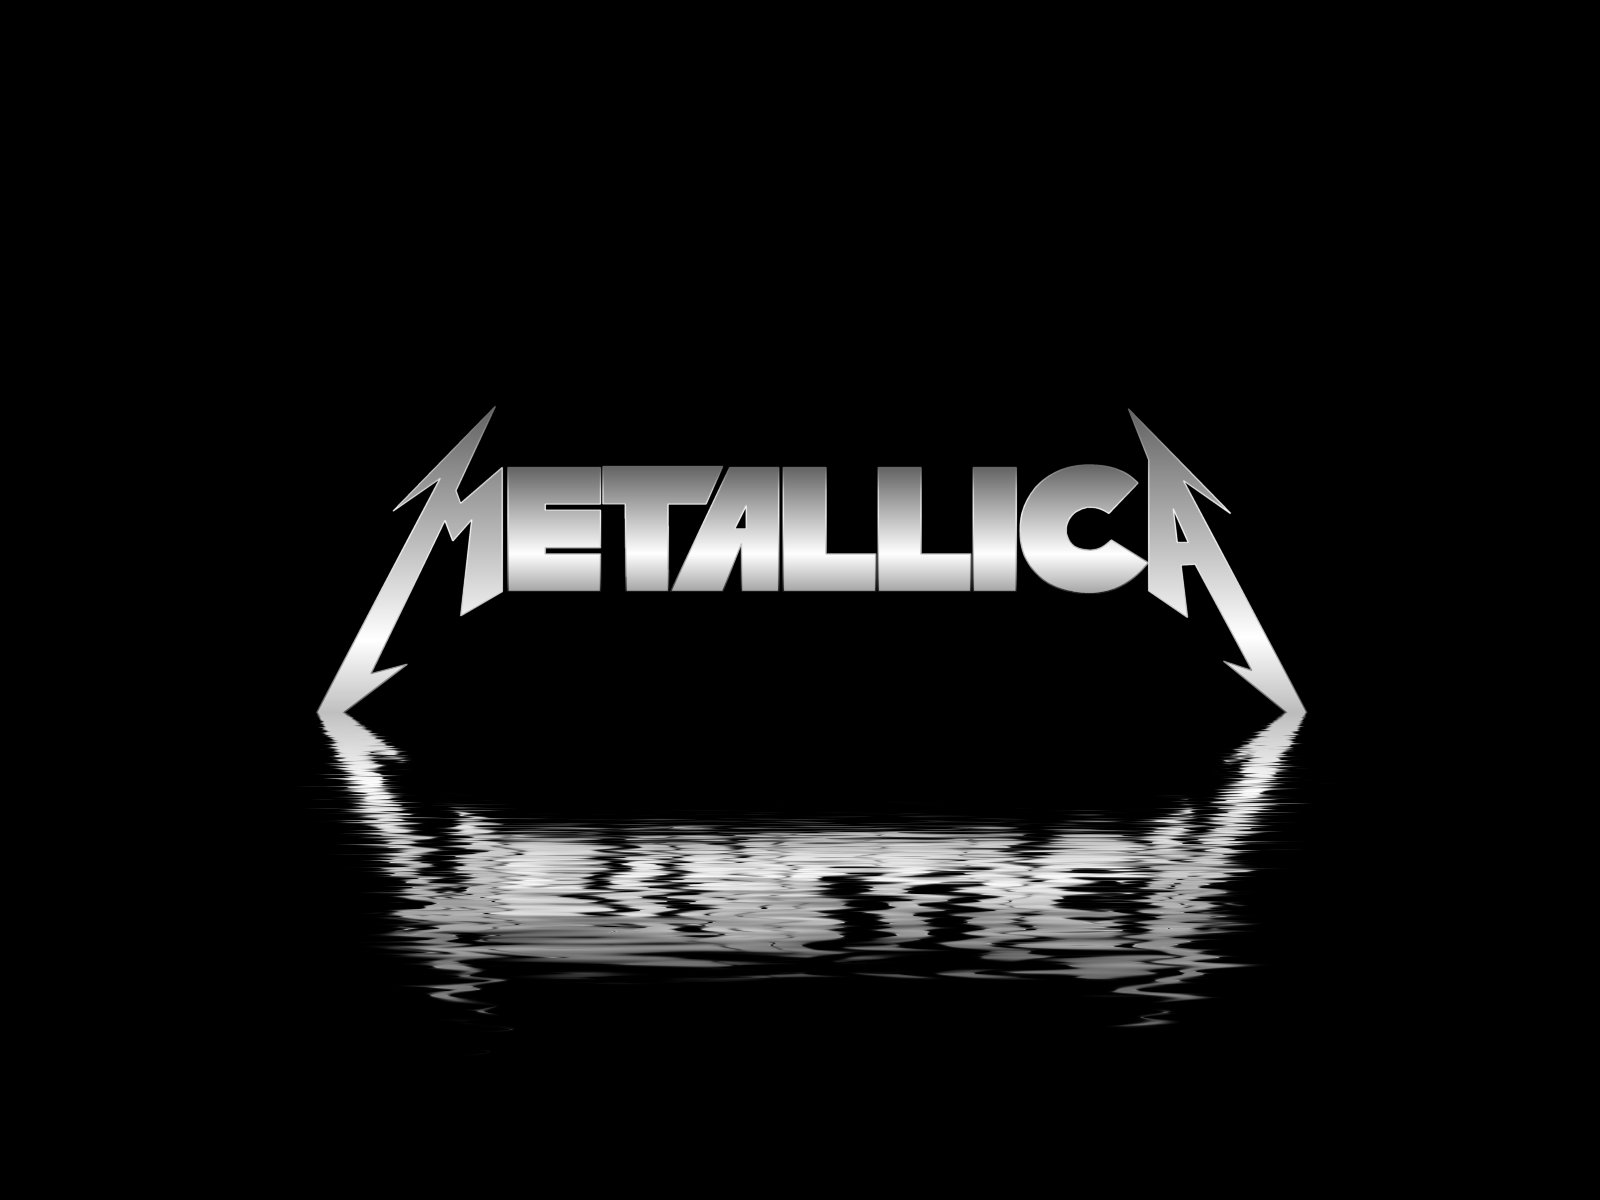 central wallpaper metallica logos hd desktop wallpapers